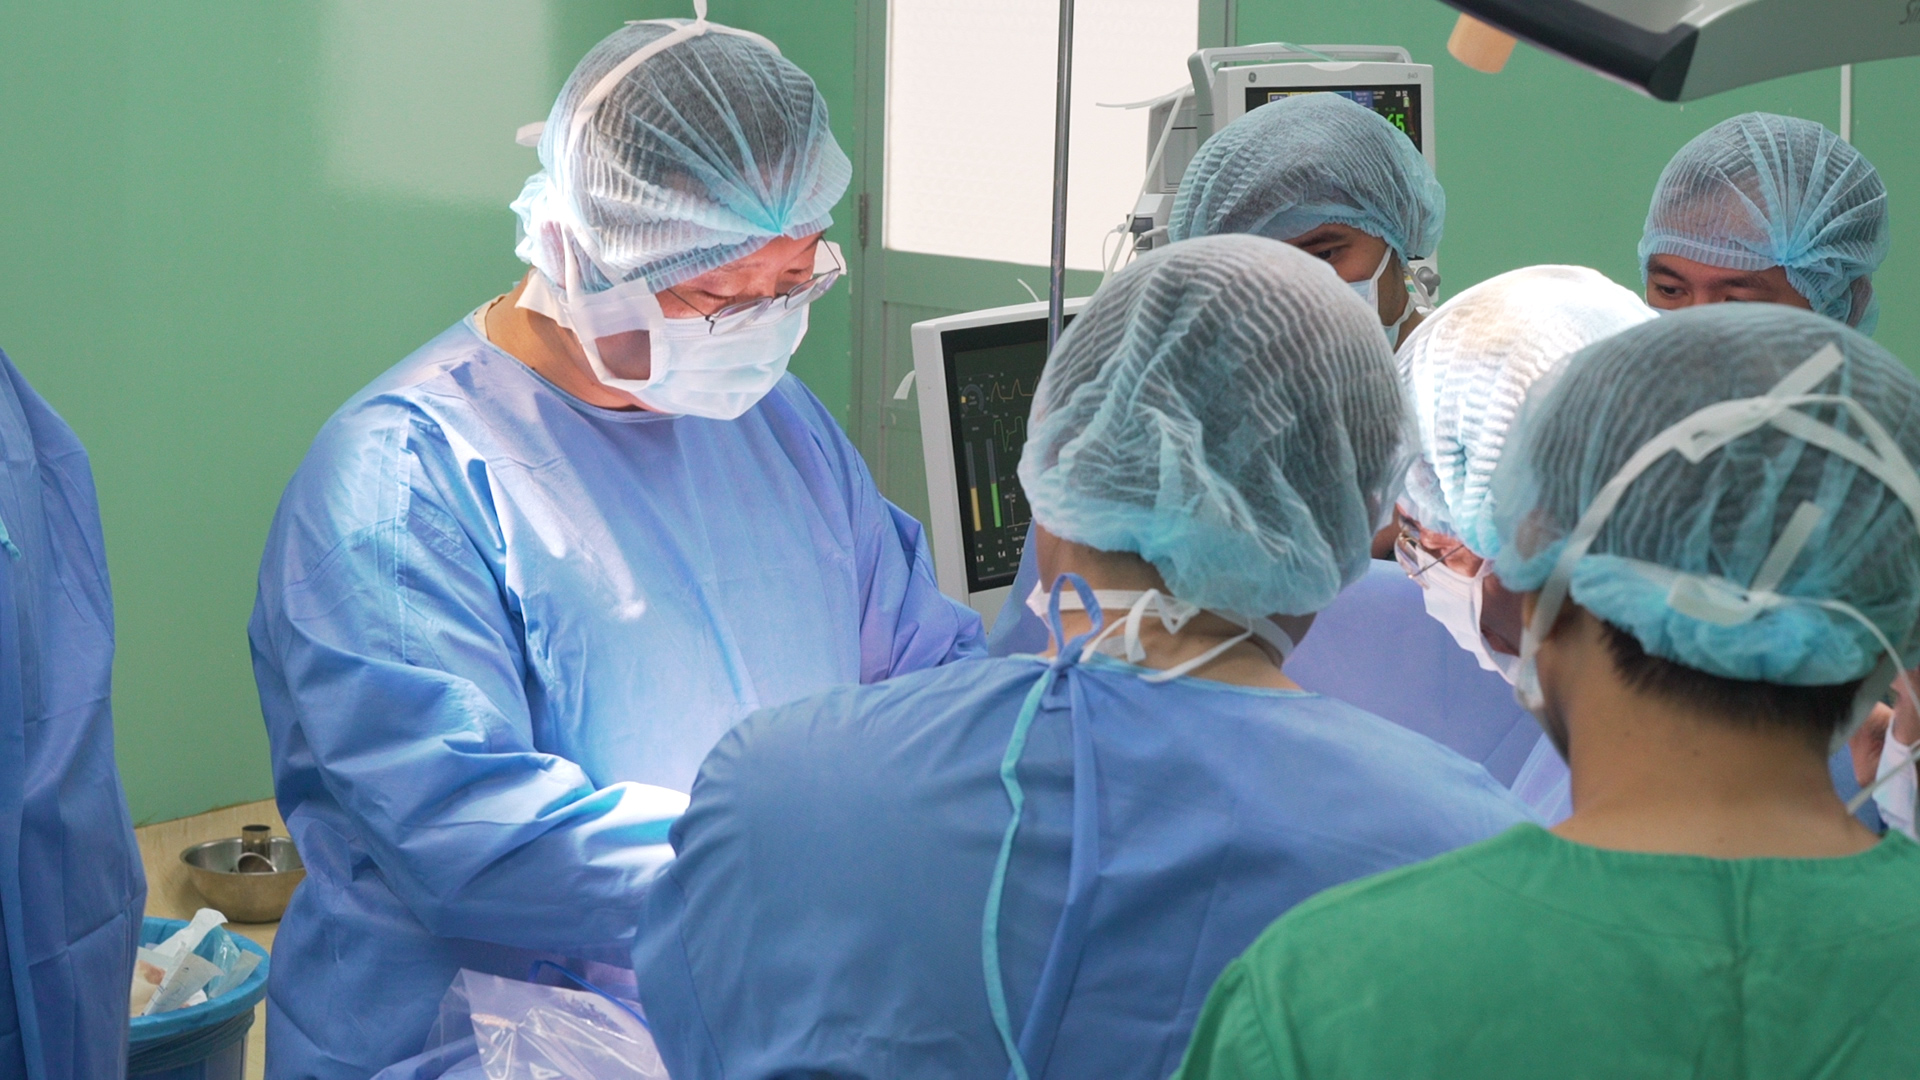 Dr. Park Penile Implant Surgery Vietnam